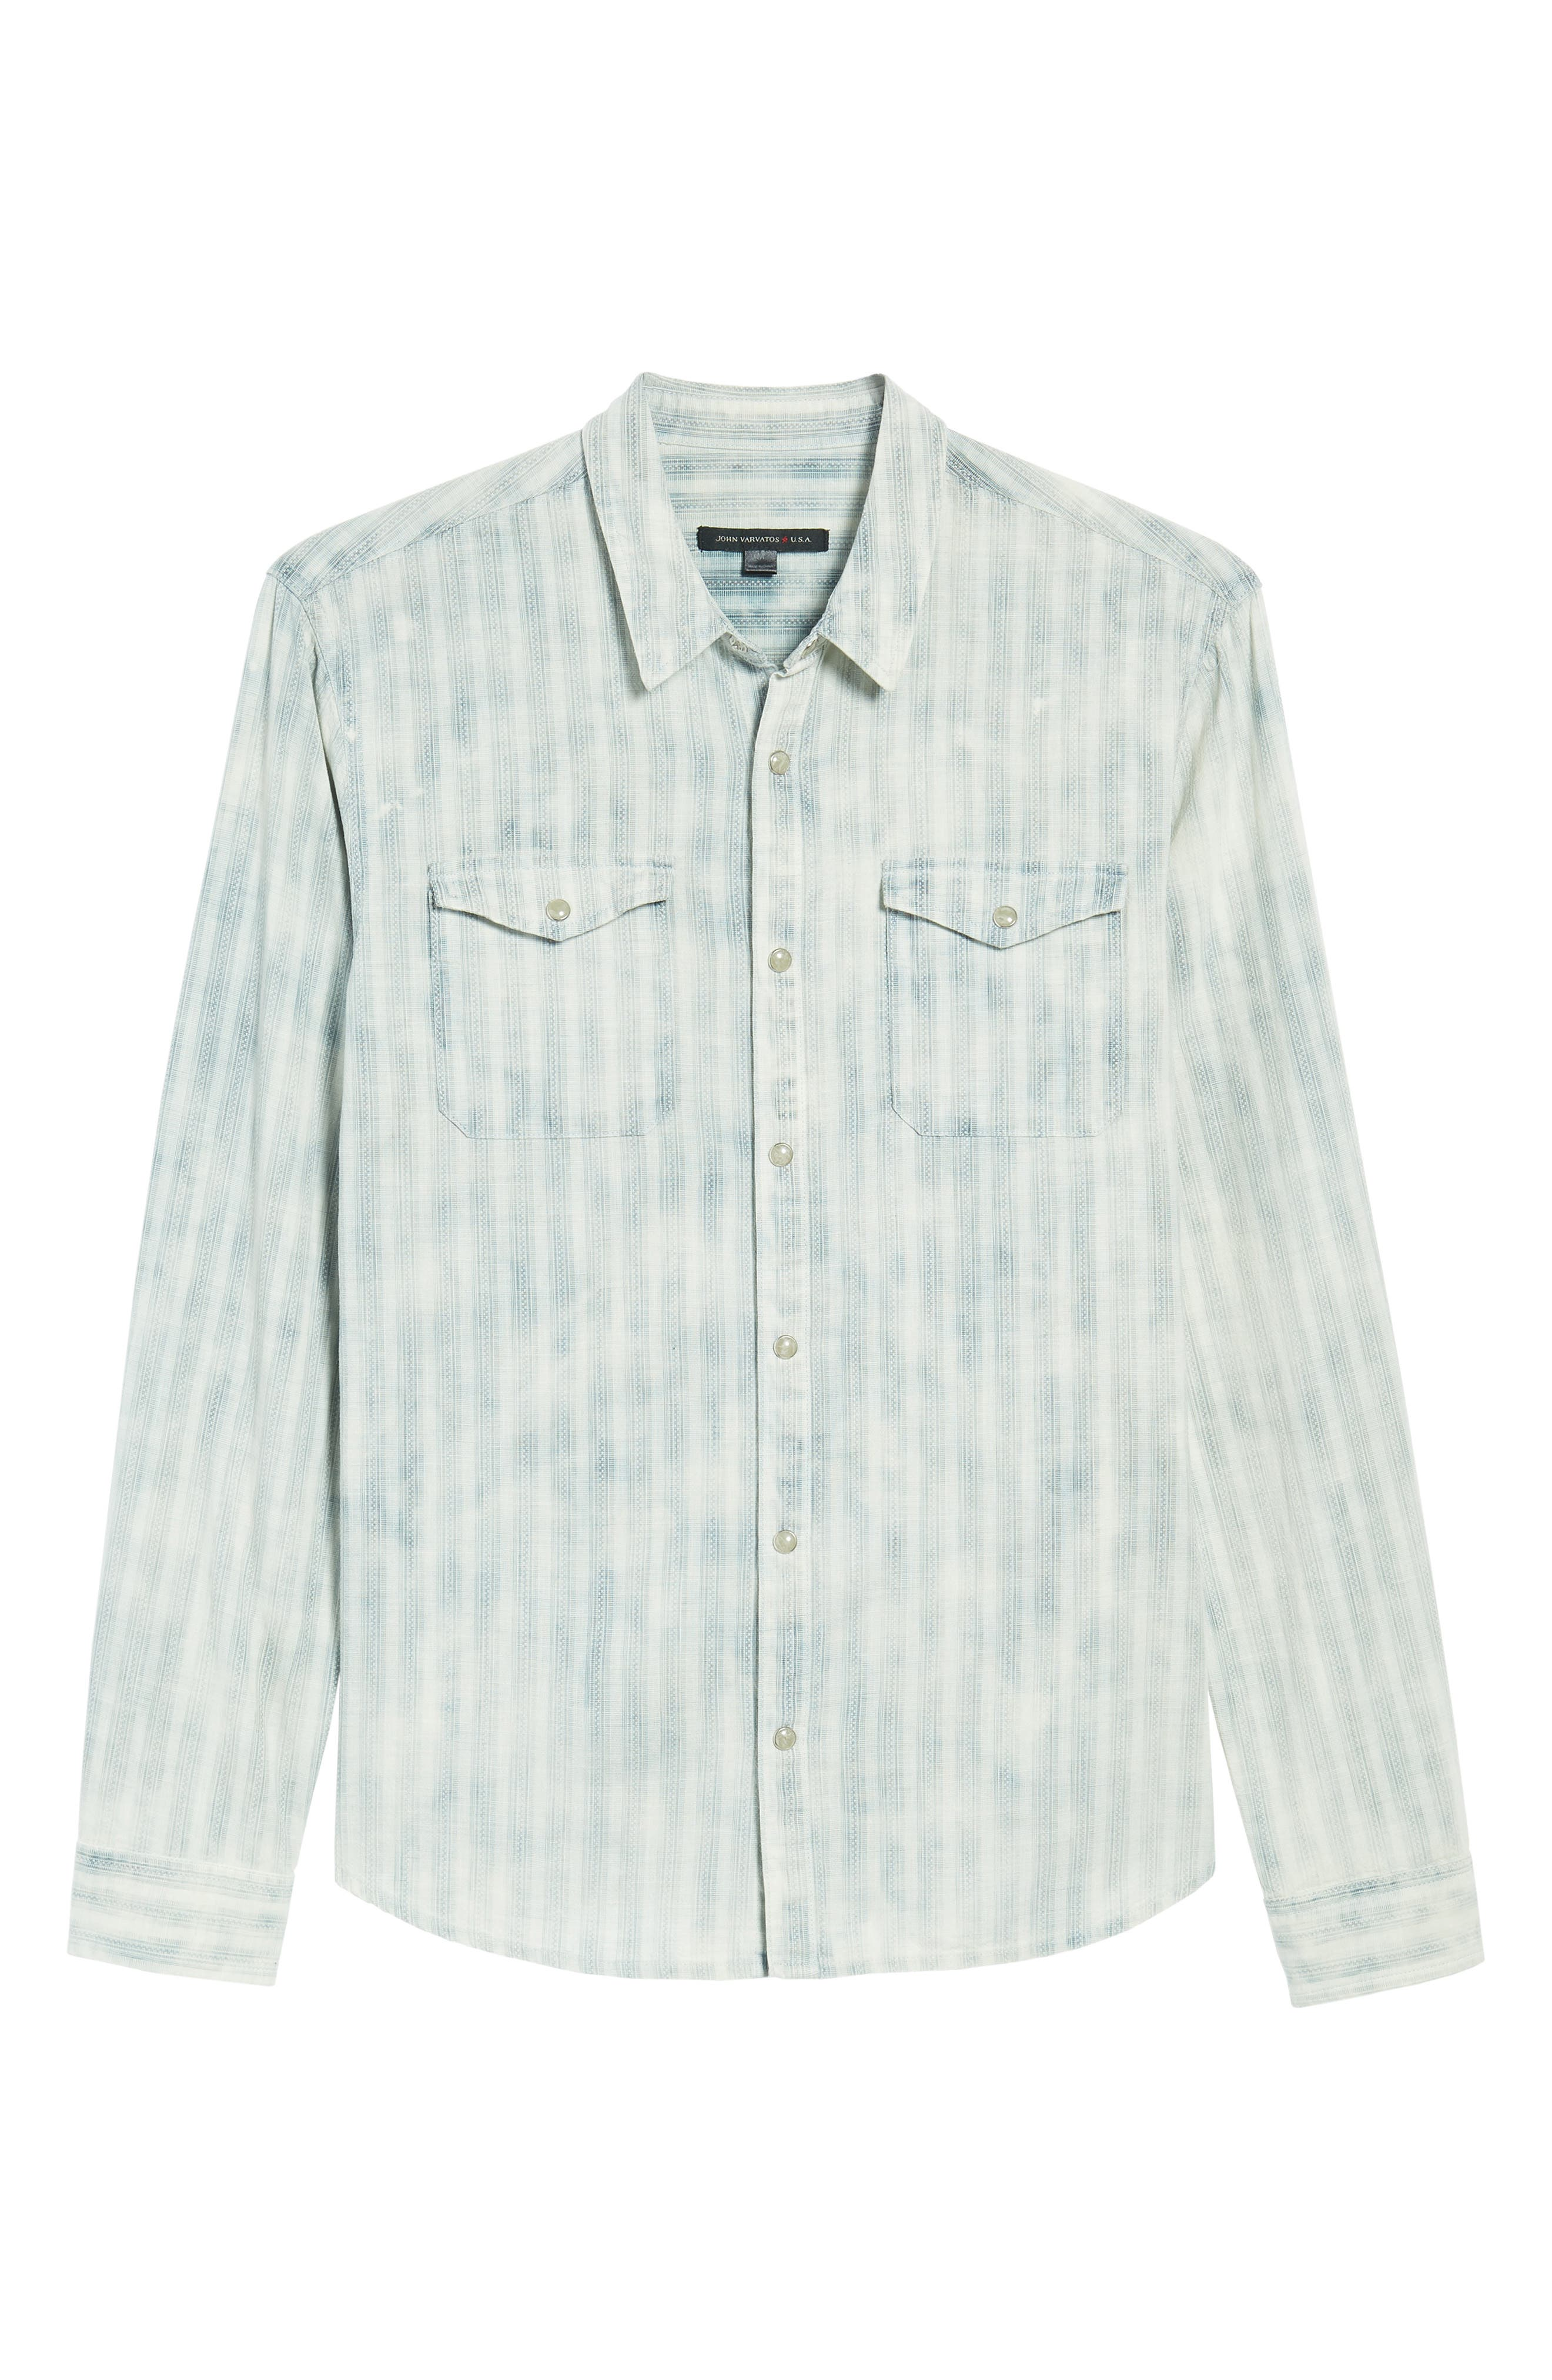 Extra Slim Fit Western Shirt,                             Alternate thumbnail 6, color,                             Reflection Grey